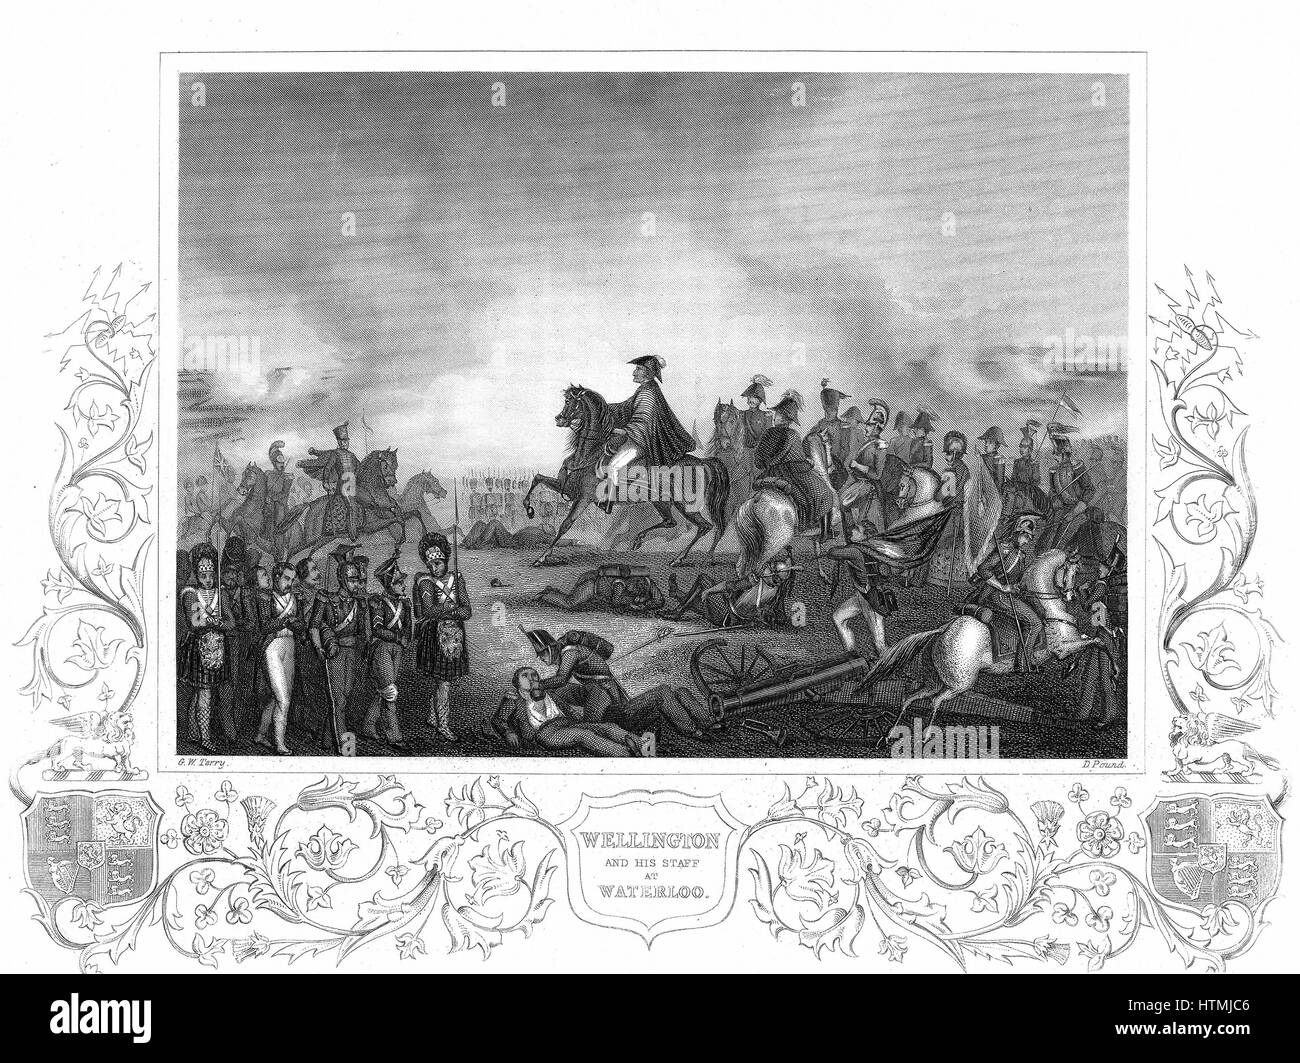 Arthur Wellesley, Duke of Wellington (1769-1852) with his staff at the Battle of Waterloo 18 June 1815. Engraving - Stock Image